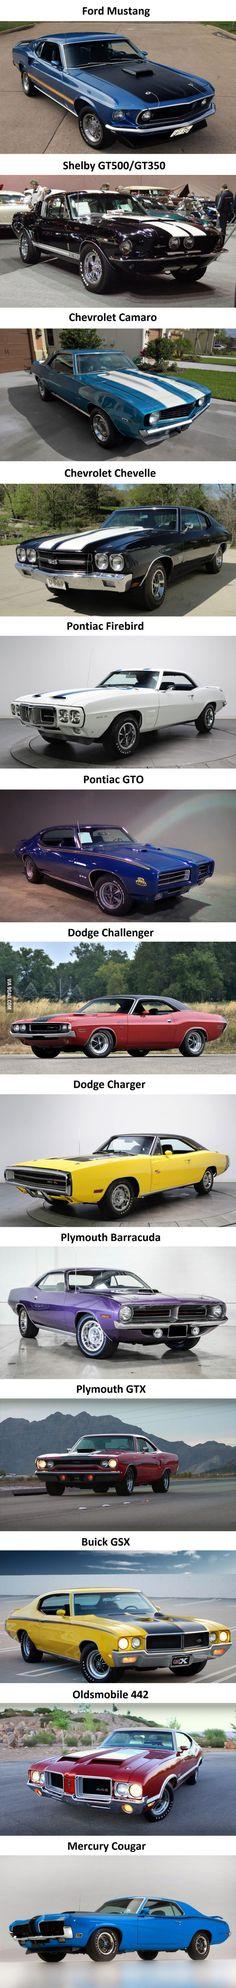 The Most Iconic Muscle Cars